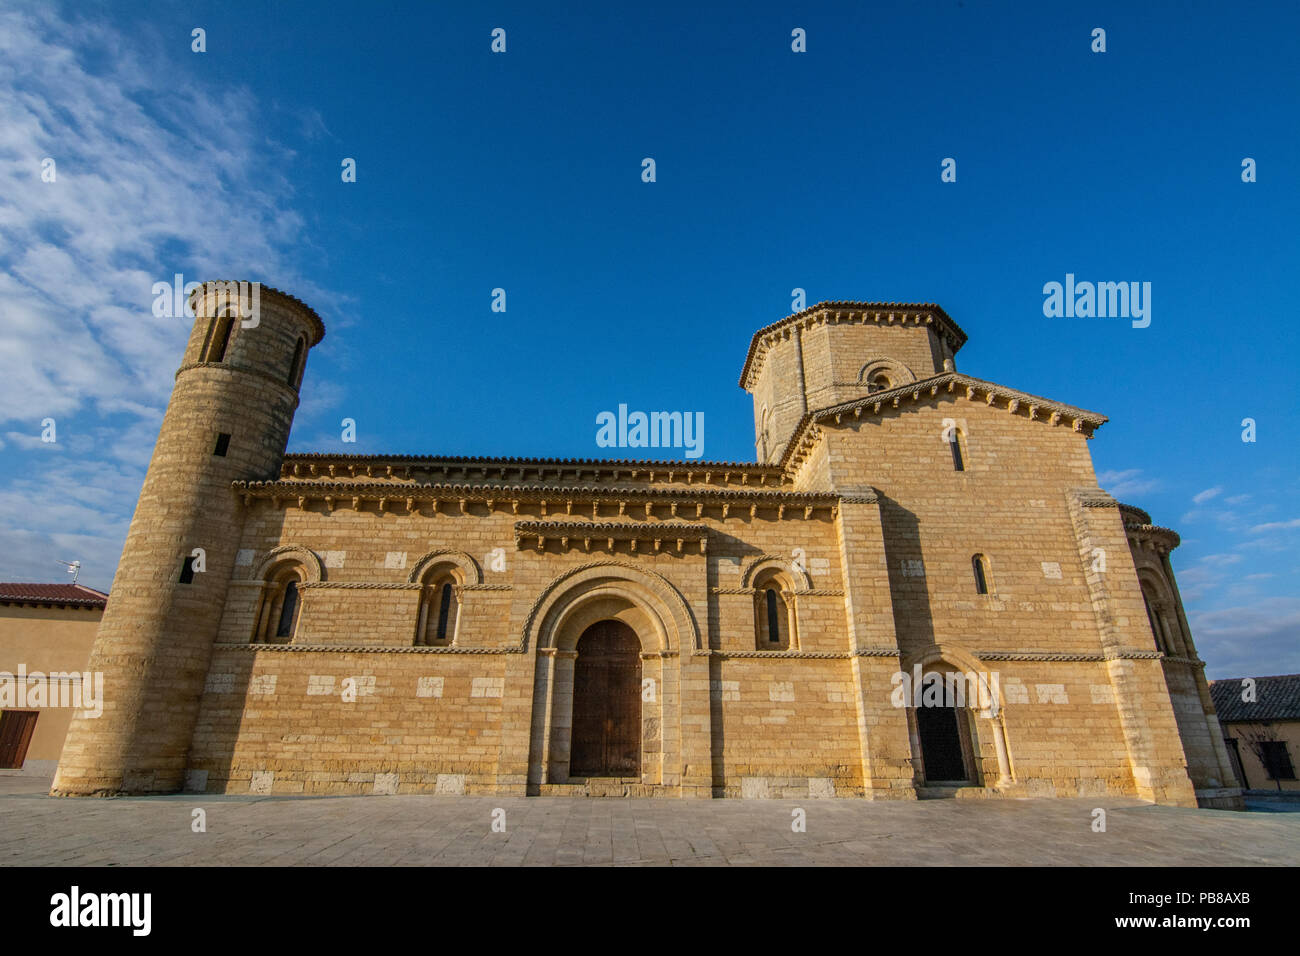 Fromista, Palencia, Spain December 2015: The Romanesque Church of Fromista on the way to Santiago - Stock Image